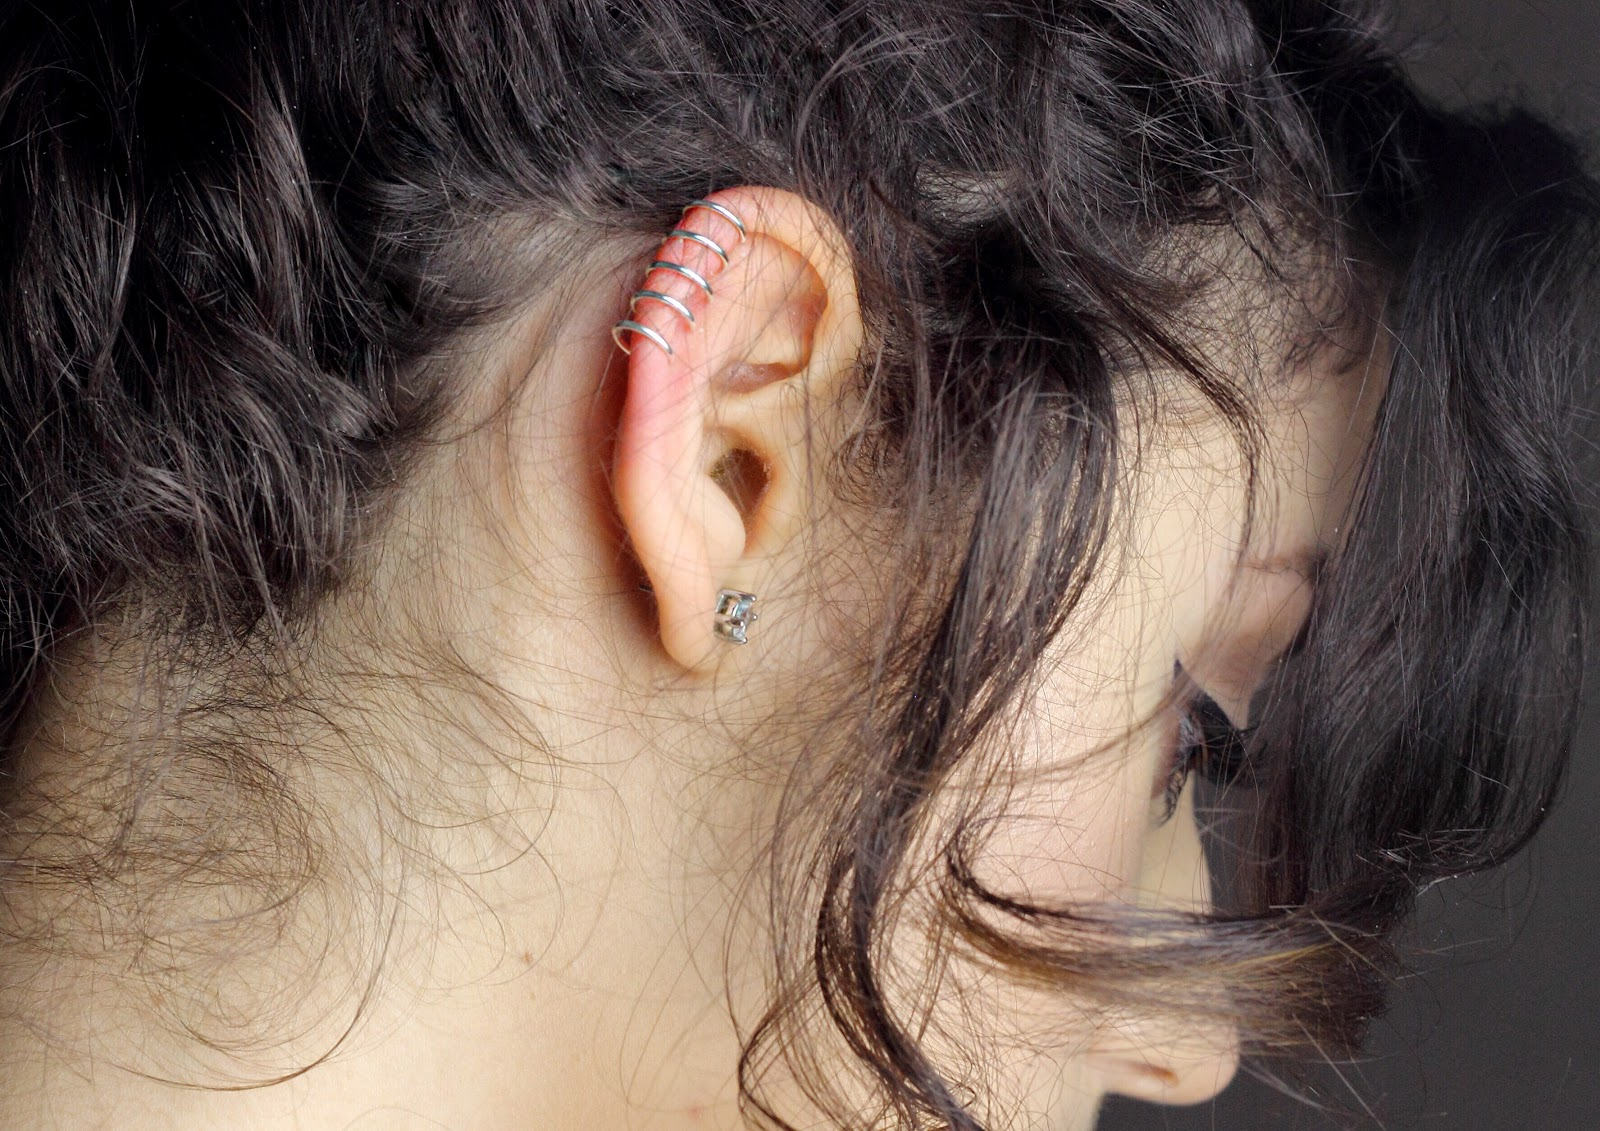 anasofiachic, body jewellery shop, review, earpiercing, ear cuff, fake earring, faux earring, fake piercing, faux piercing, beauty blogger, fashion blogger, lifestyle blogger, makeup blogger, british blogger